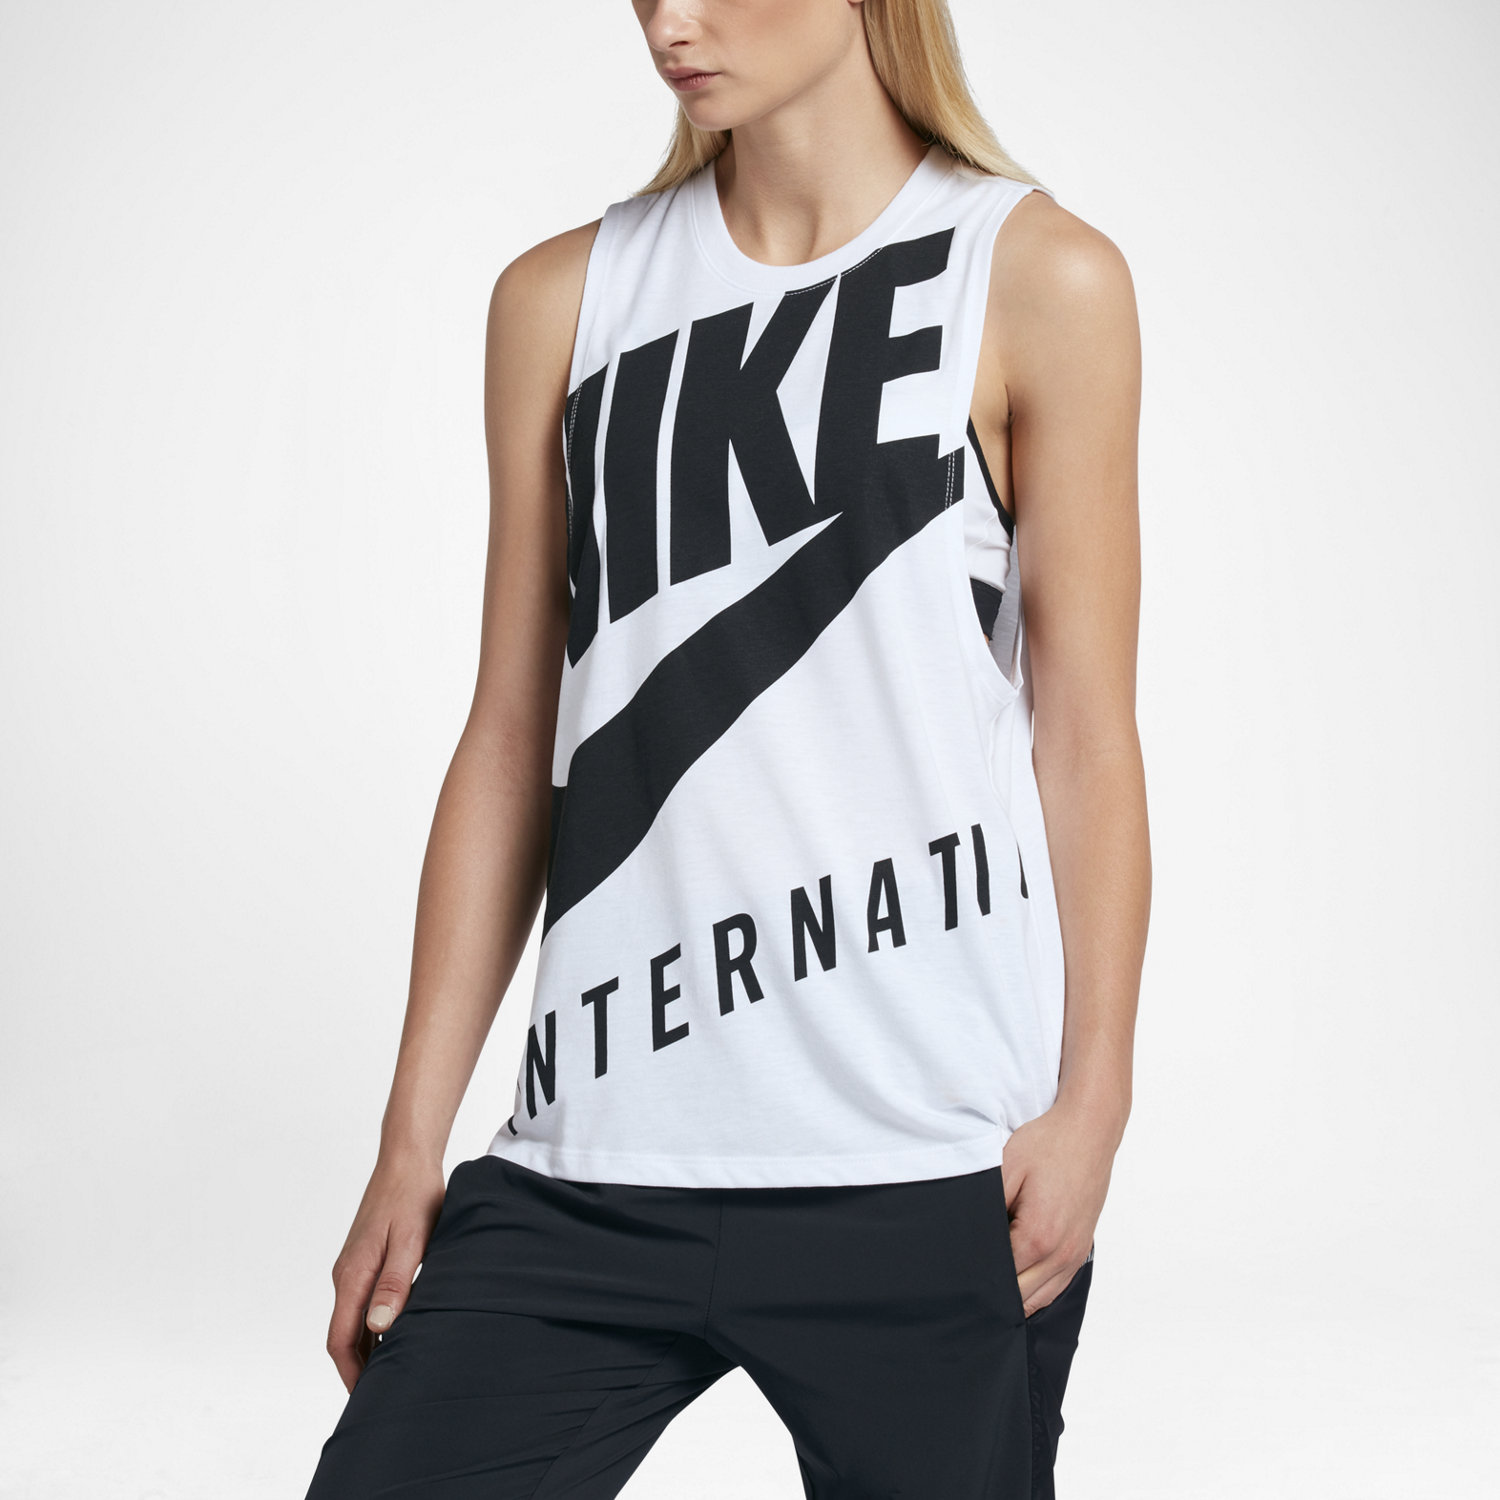 nike free run 2 id - Women's Tank Tops & Sleeveless Shirts. Nike.com